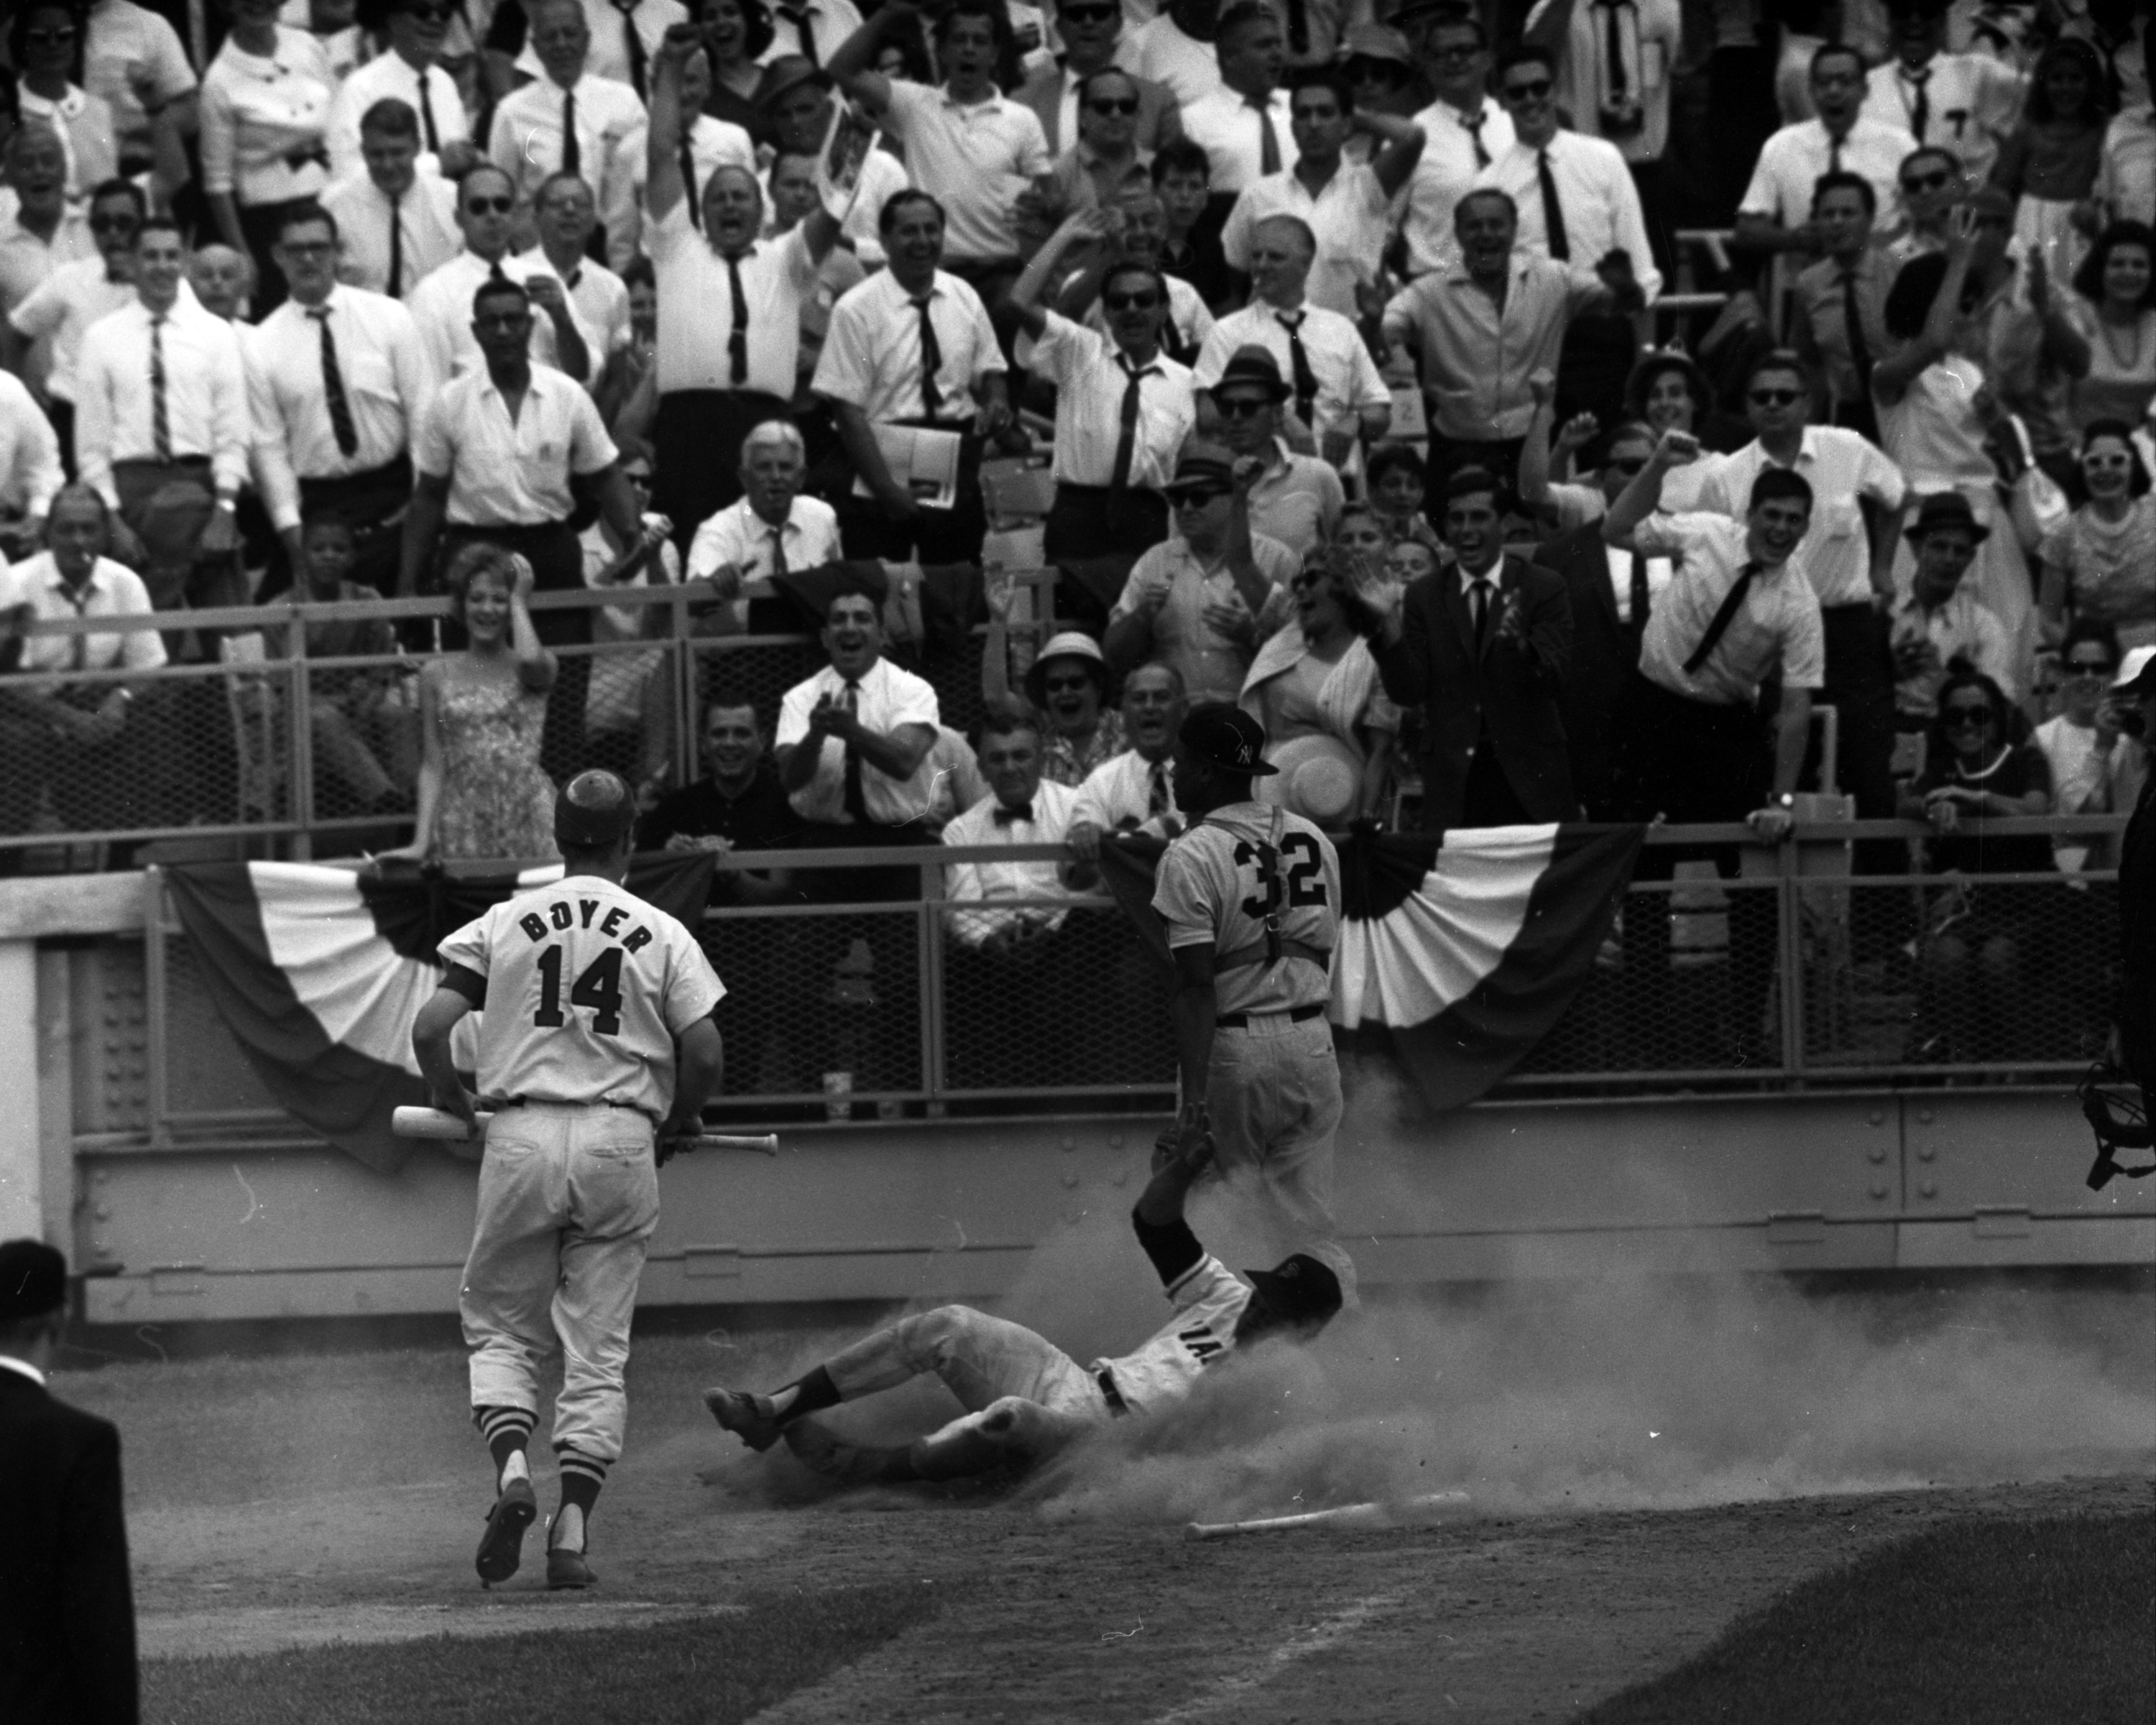 Baseball All-Star Game 1964 - Willie is home in a game-tying cloud of dust. Howard looks at throw from Joe Pepitone: it bounced out of control on hard infield.   (Photo By: Charles Hoff/NY Daily News via Getty Images)